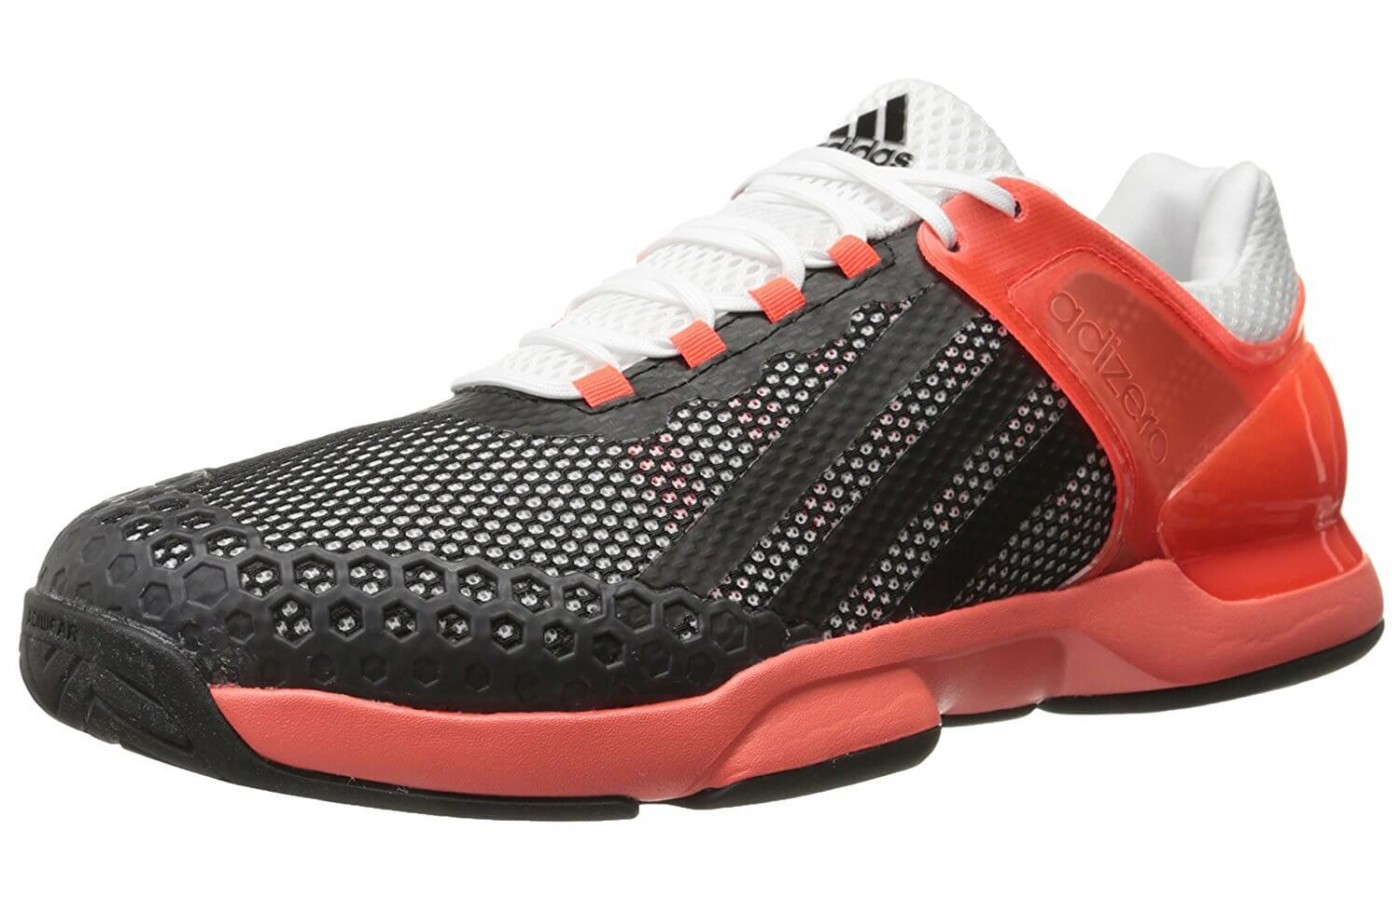 buy popular 147ac 02224 The Adidas Adizero Ubersonic is a tennis shoe designed for stability and  protection.